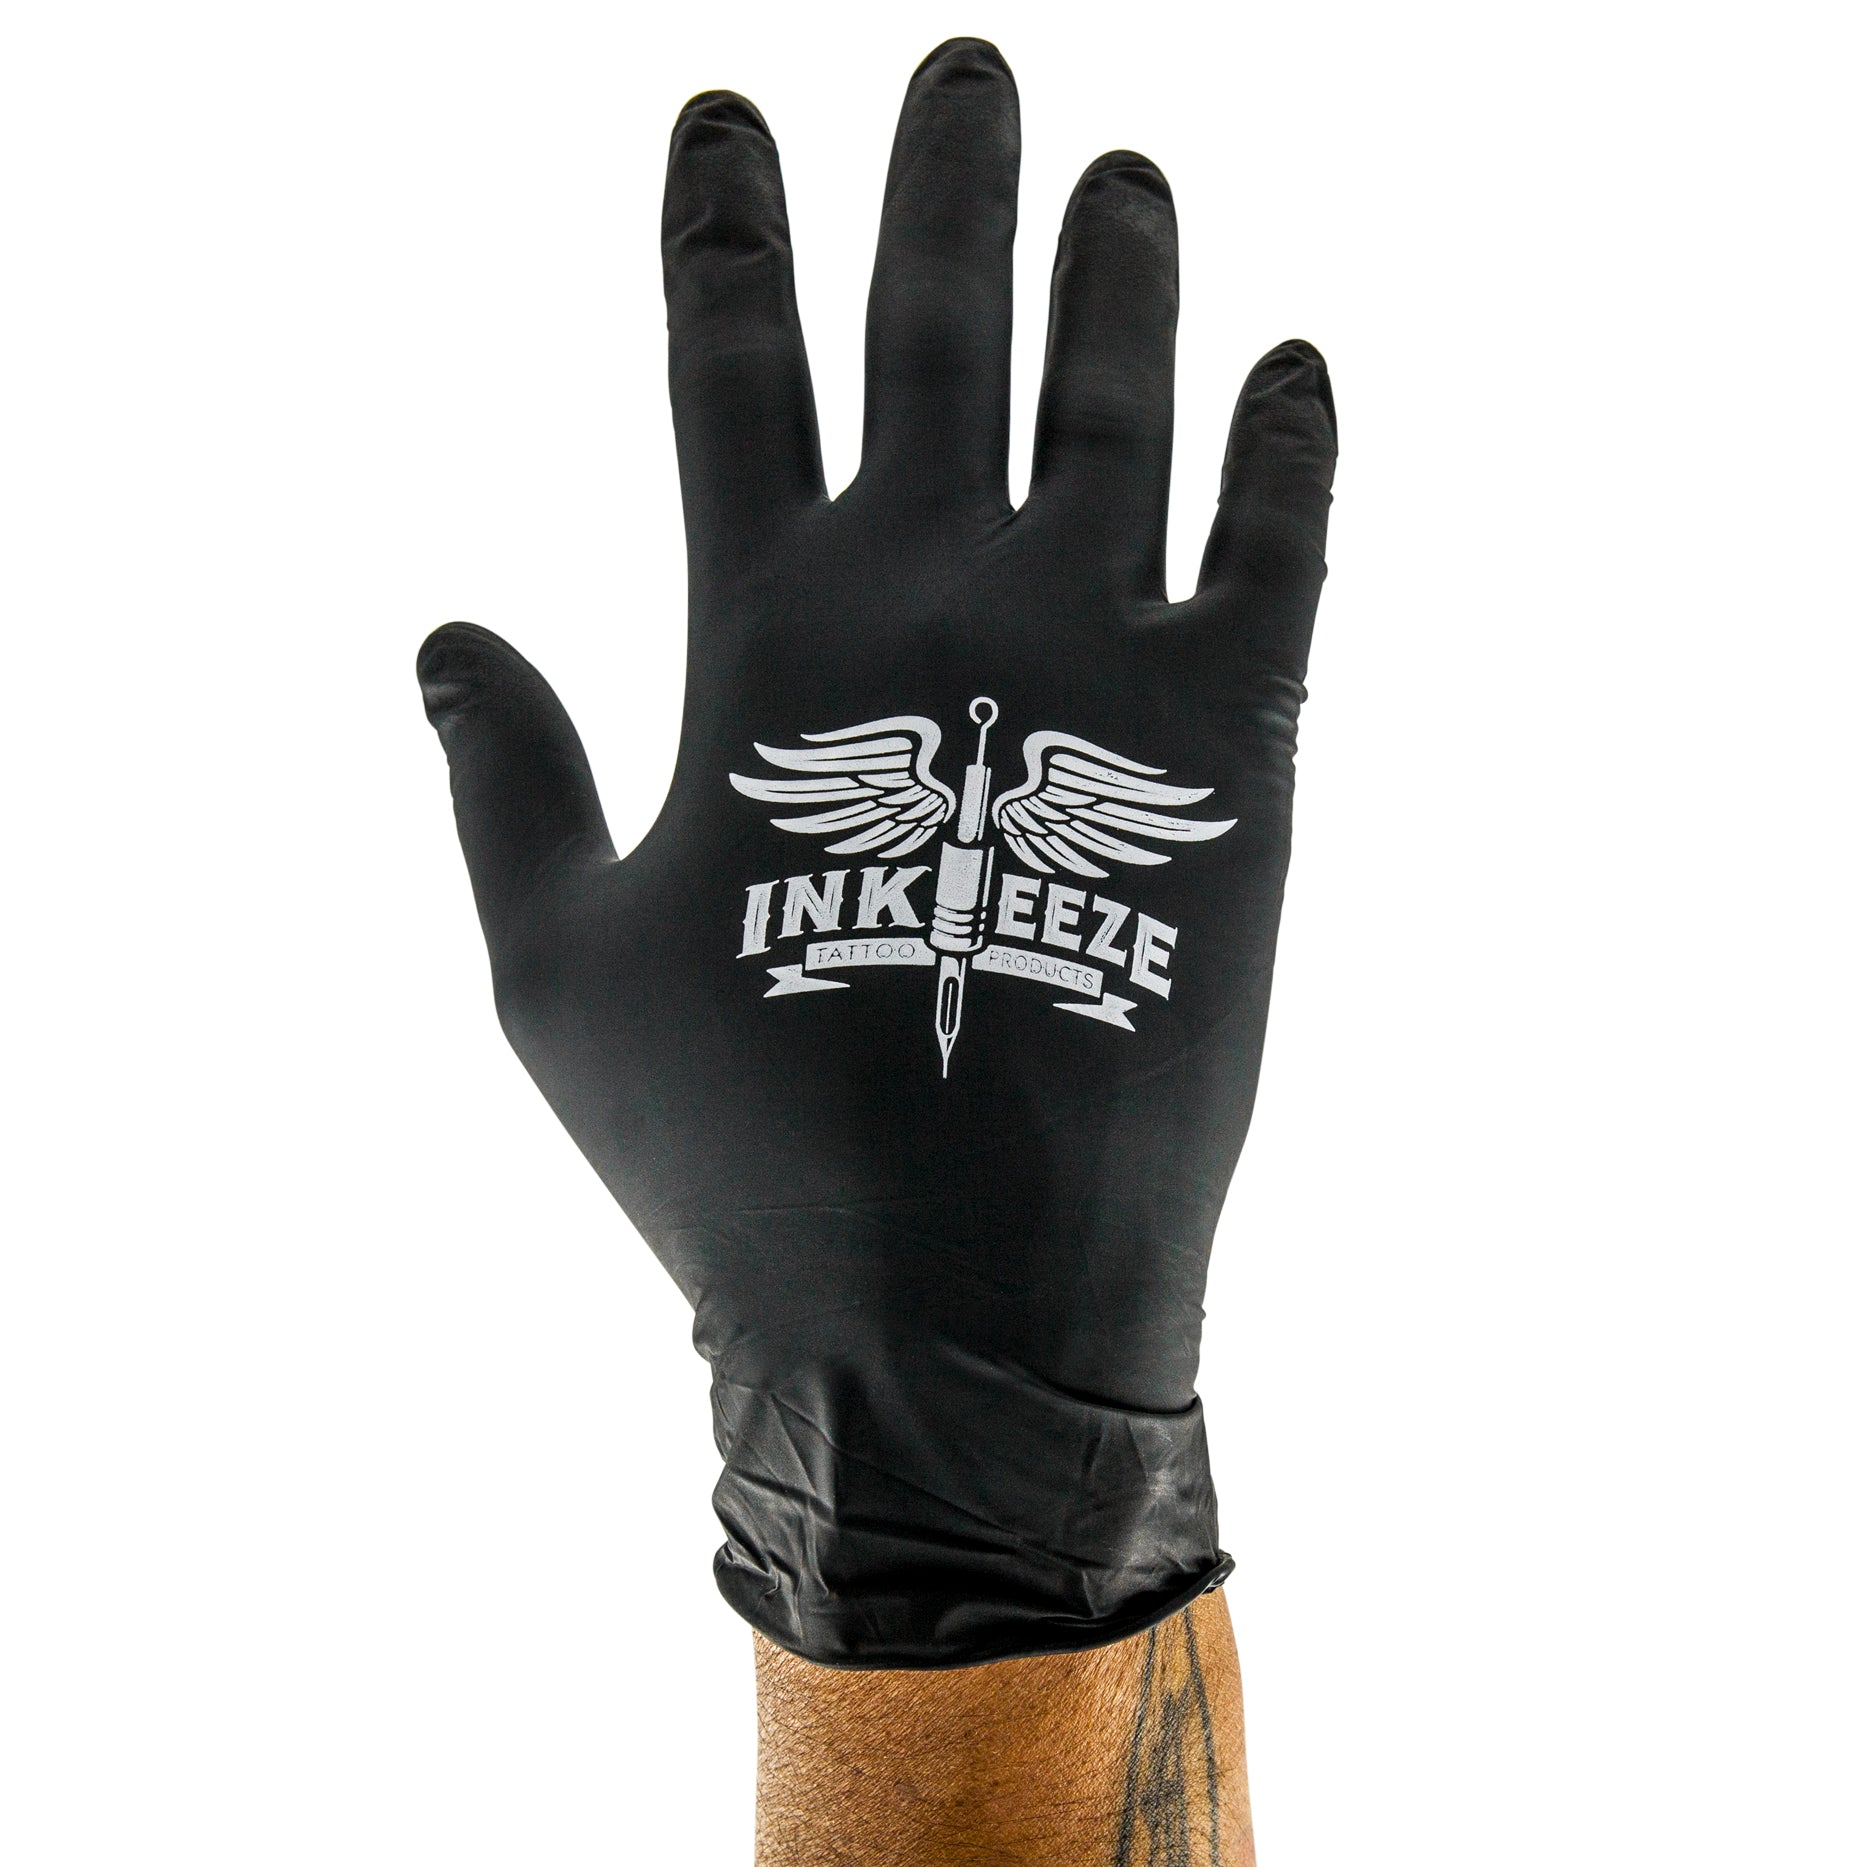 Inkeeze - Black Nitrile Gloves